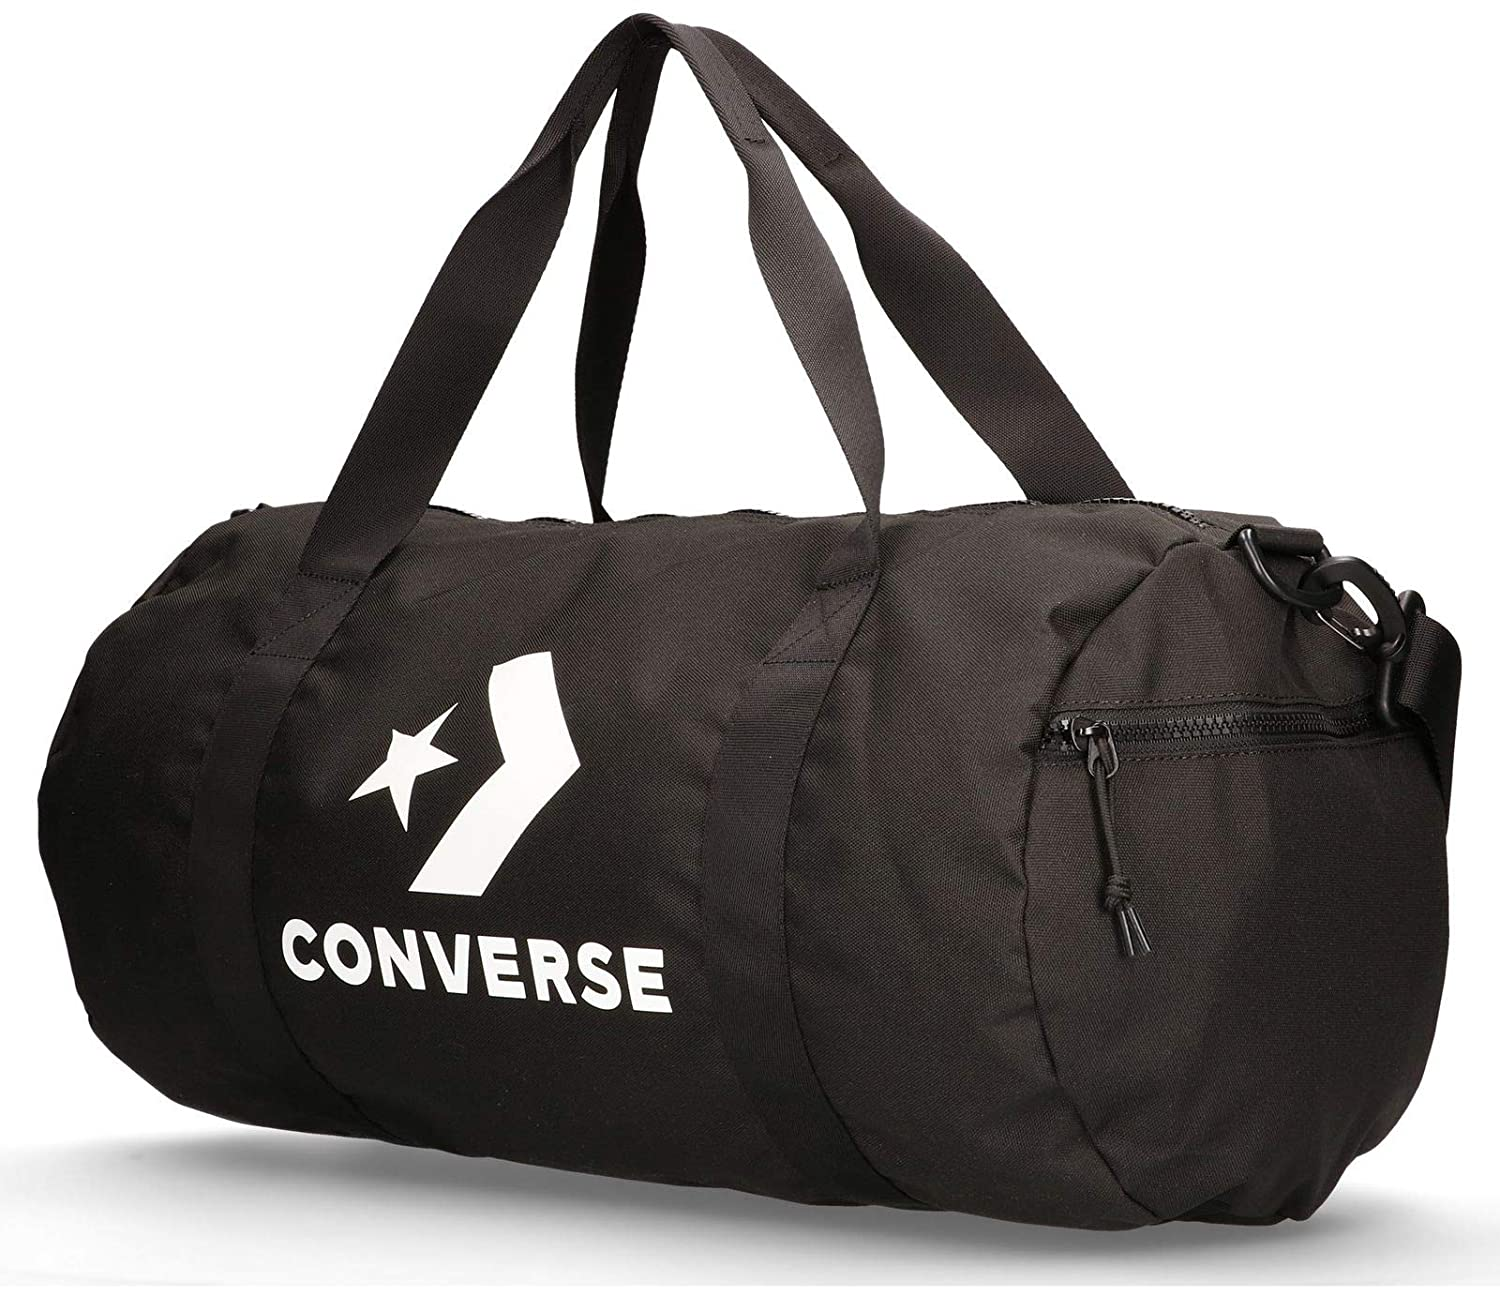 Amazon.com | Converse Sport Duffel Bag Backpack Black/White, One Size |  Travel Duffels